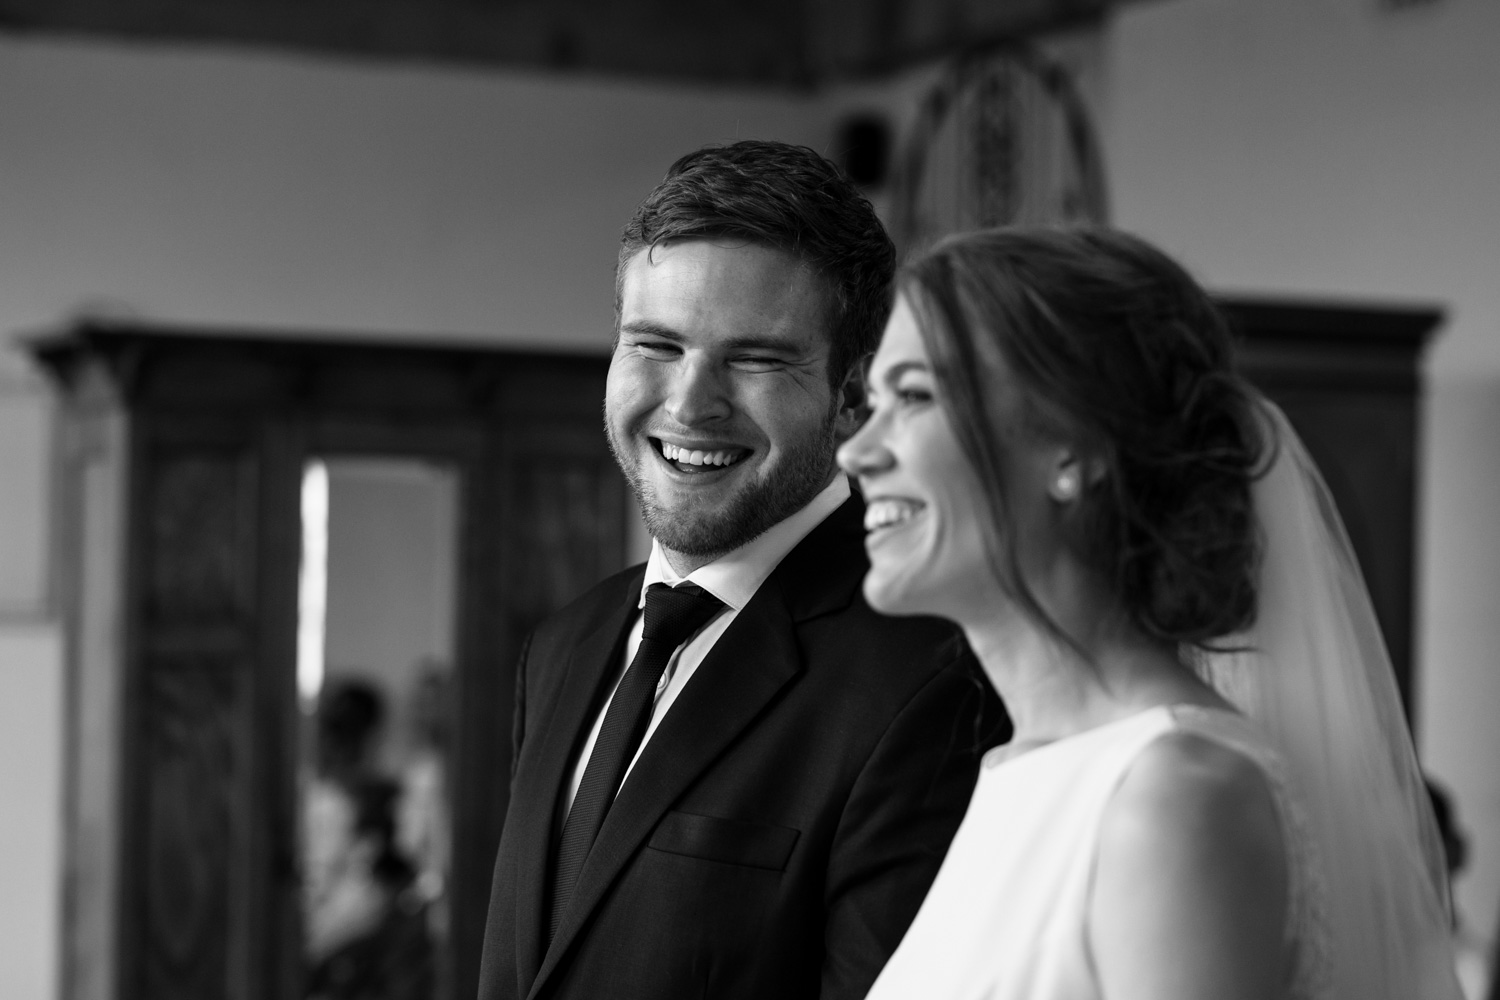 Groom Wearing Class Black Suit Smiles At Bride In Vancouver Wedding Ceremony